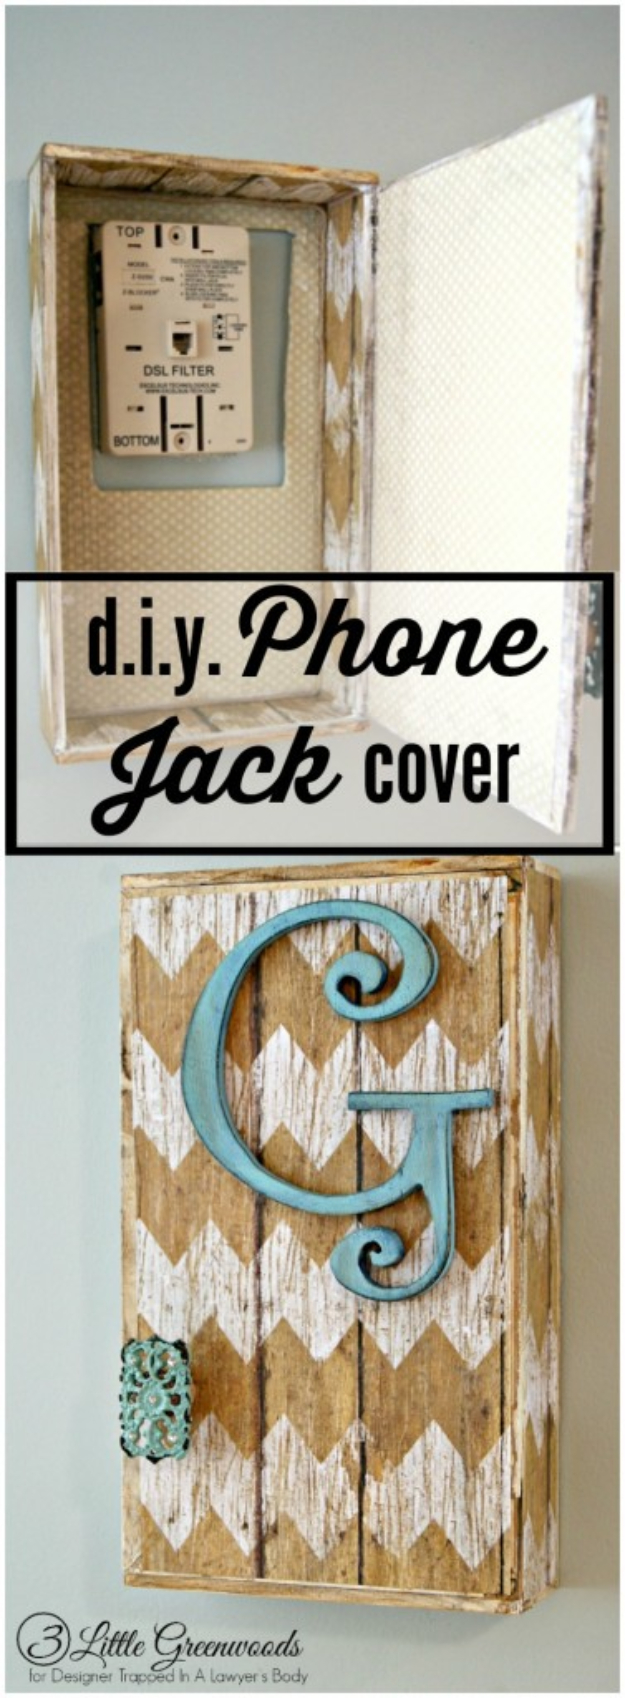 DIY Phone Hacks - DIY Phone Jack Cover - Cool Tips and Tricks for Phones, Headphones and iPhone How To - Make Speakers, Change Settings, Know Secrets You Can Do With Your Phone By Learning This Cool Stuff - DIY Projects and Crafts for Men and Women http://diyjoy.com/diy-iphone-hacks